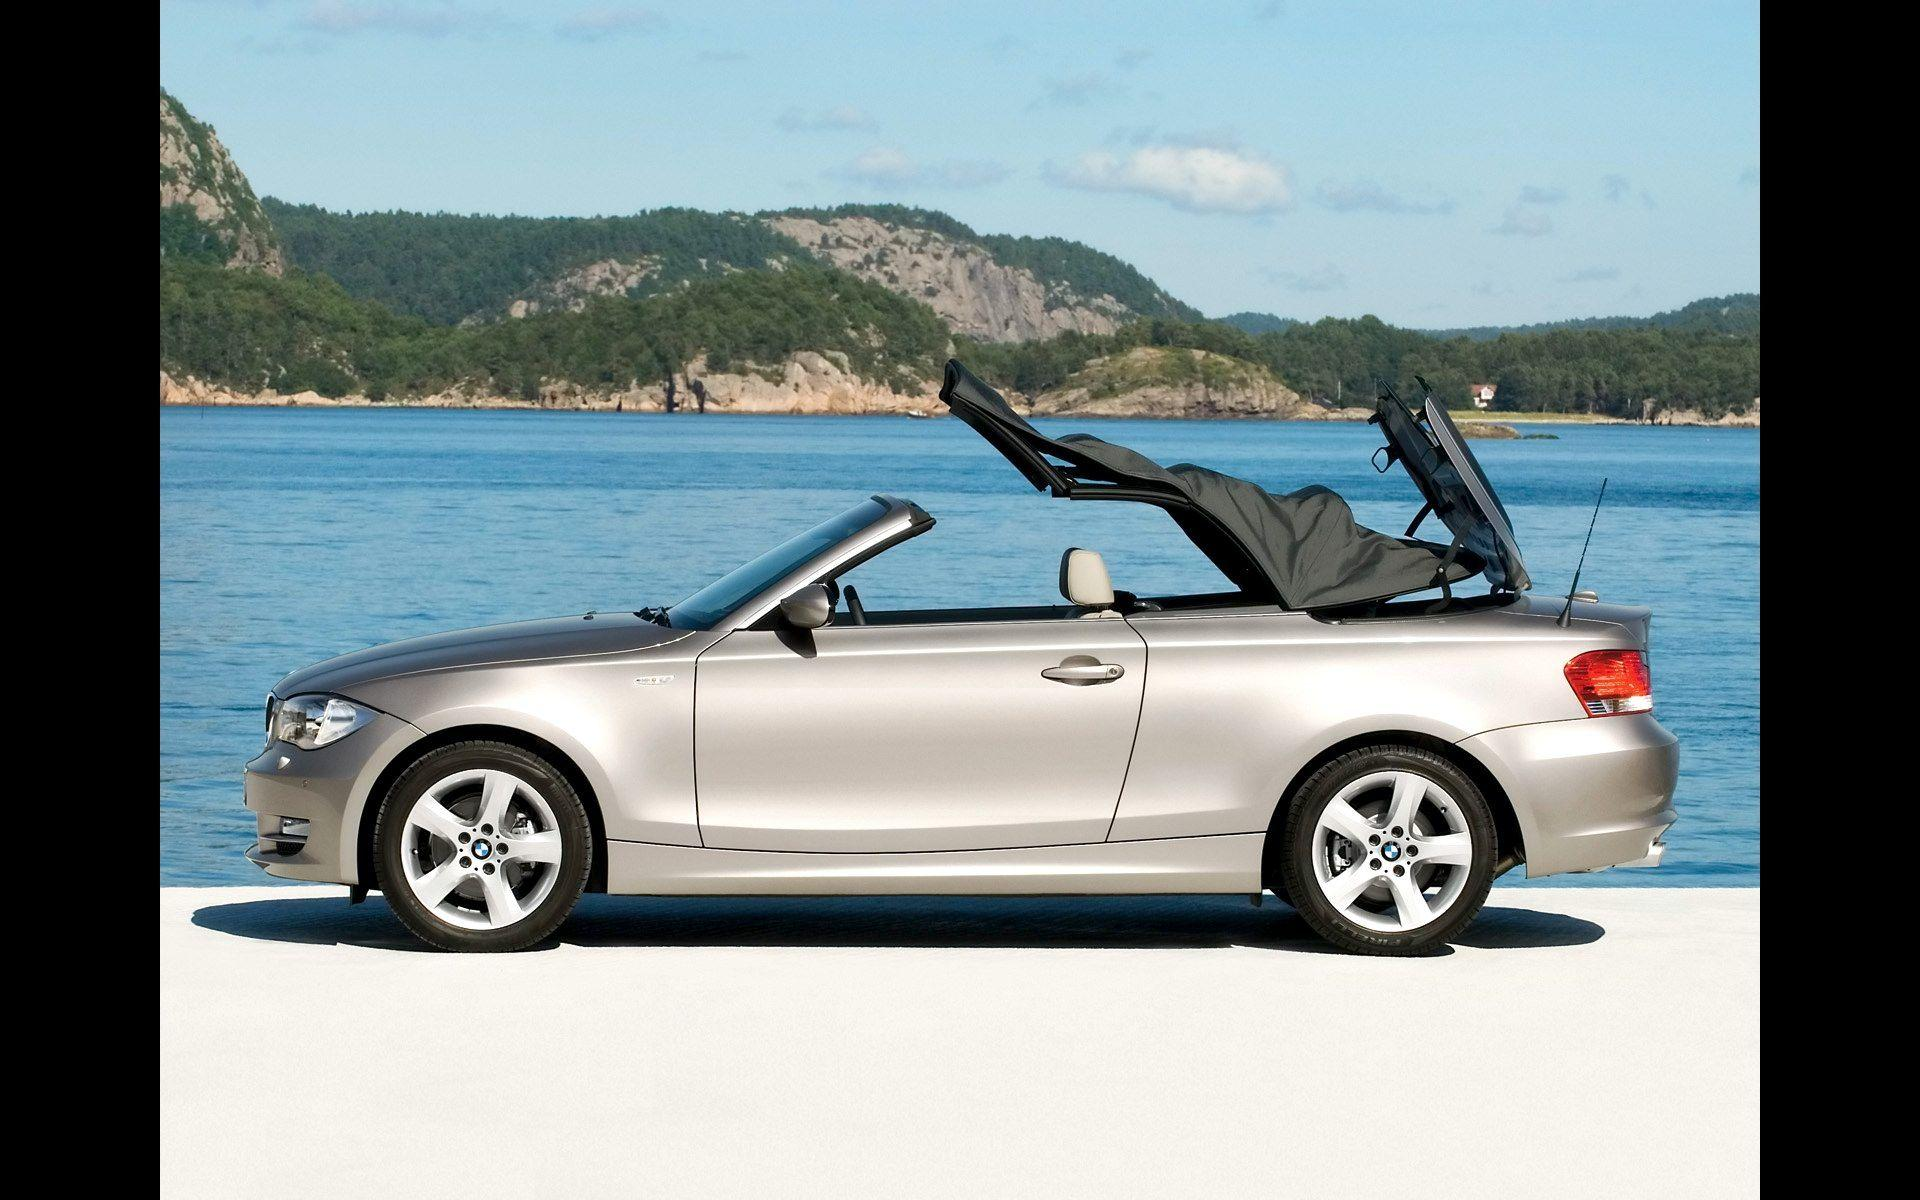 2008 BMW 1 Series Convertible Wallpaper 19 - 1920x1200